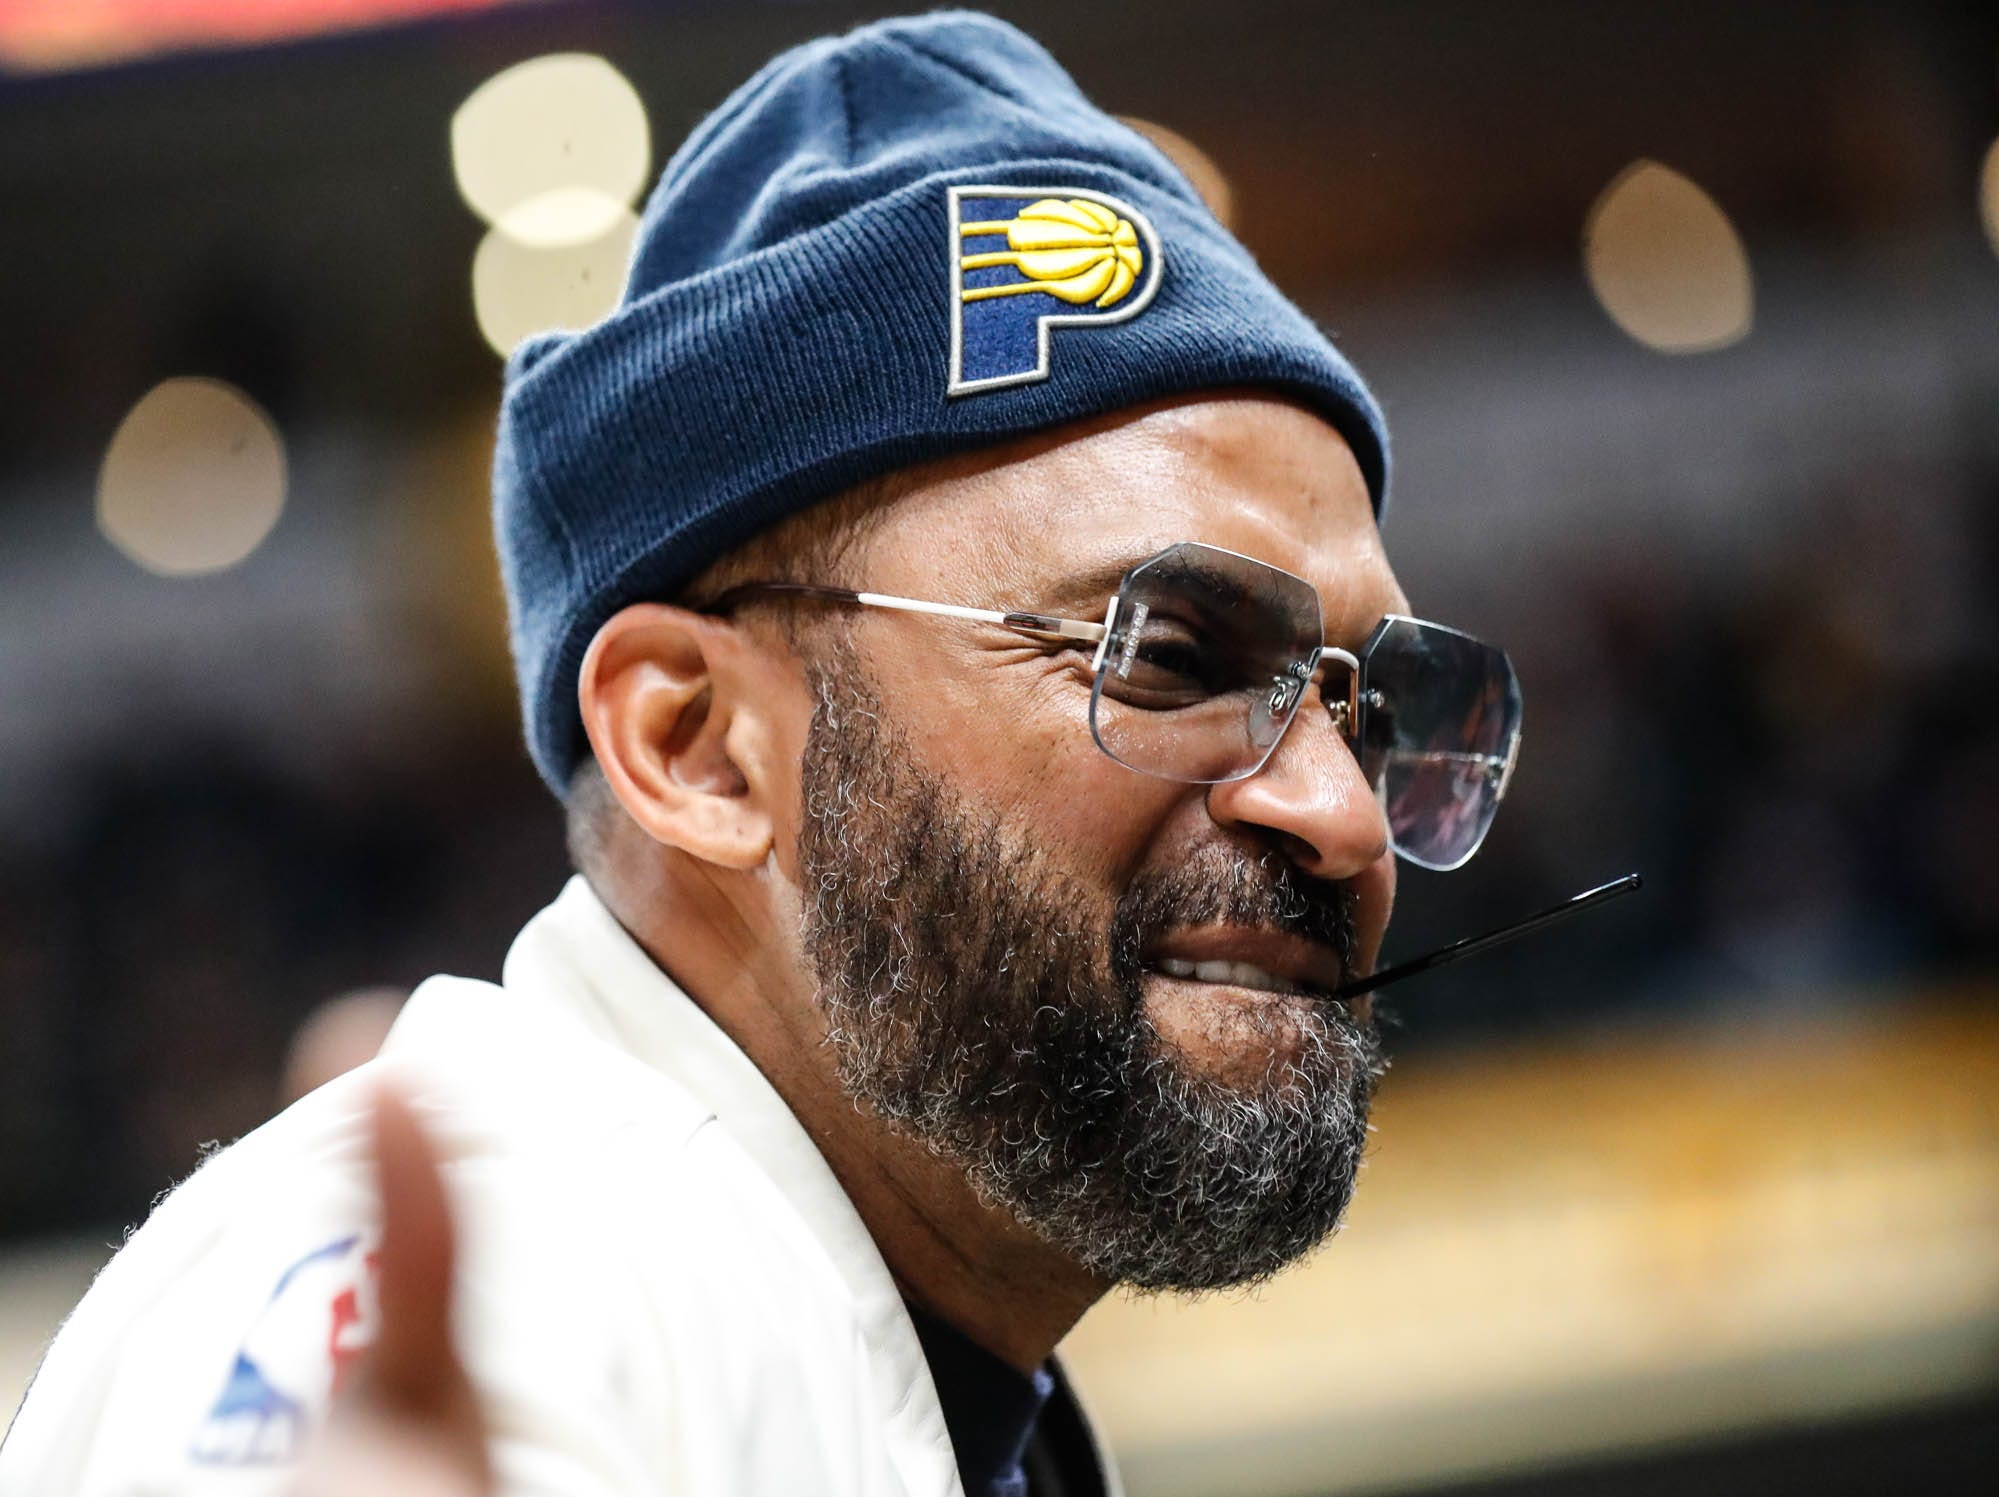 Mike Epps greets fans during a game between the Indiana Pacers and the Detroit Pistons at at Bankers Life Fieldhouse in Indianapolis on Friday, Dec. 28, 2018.